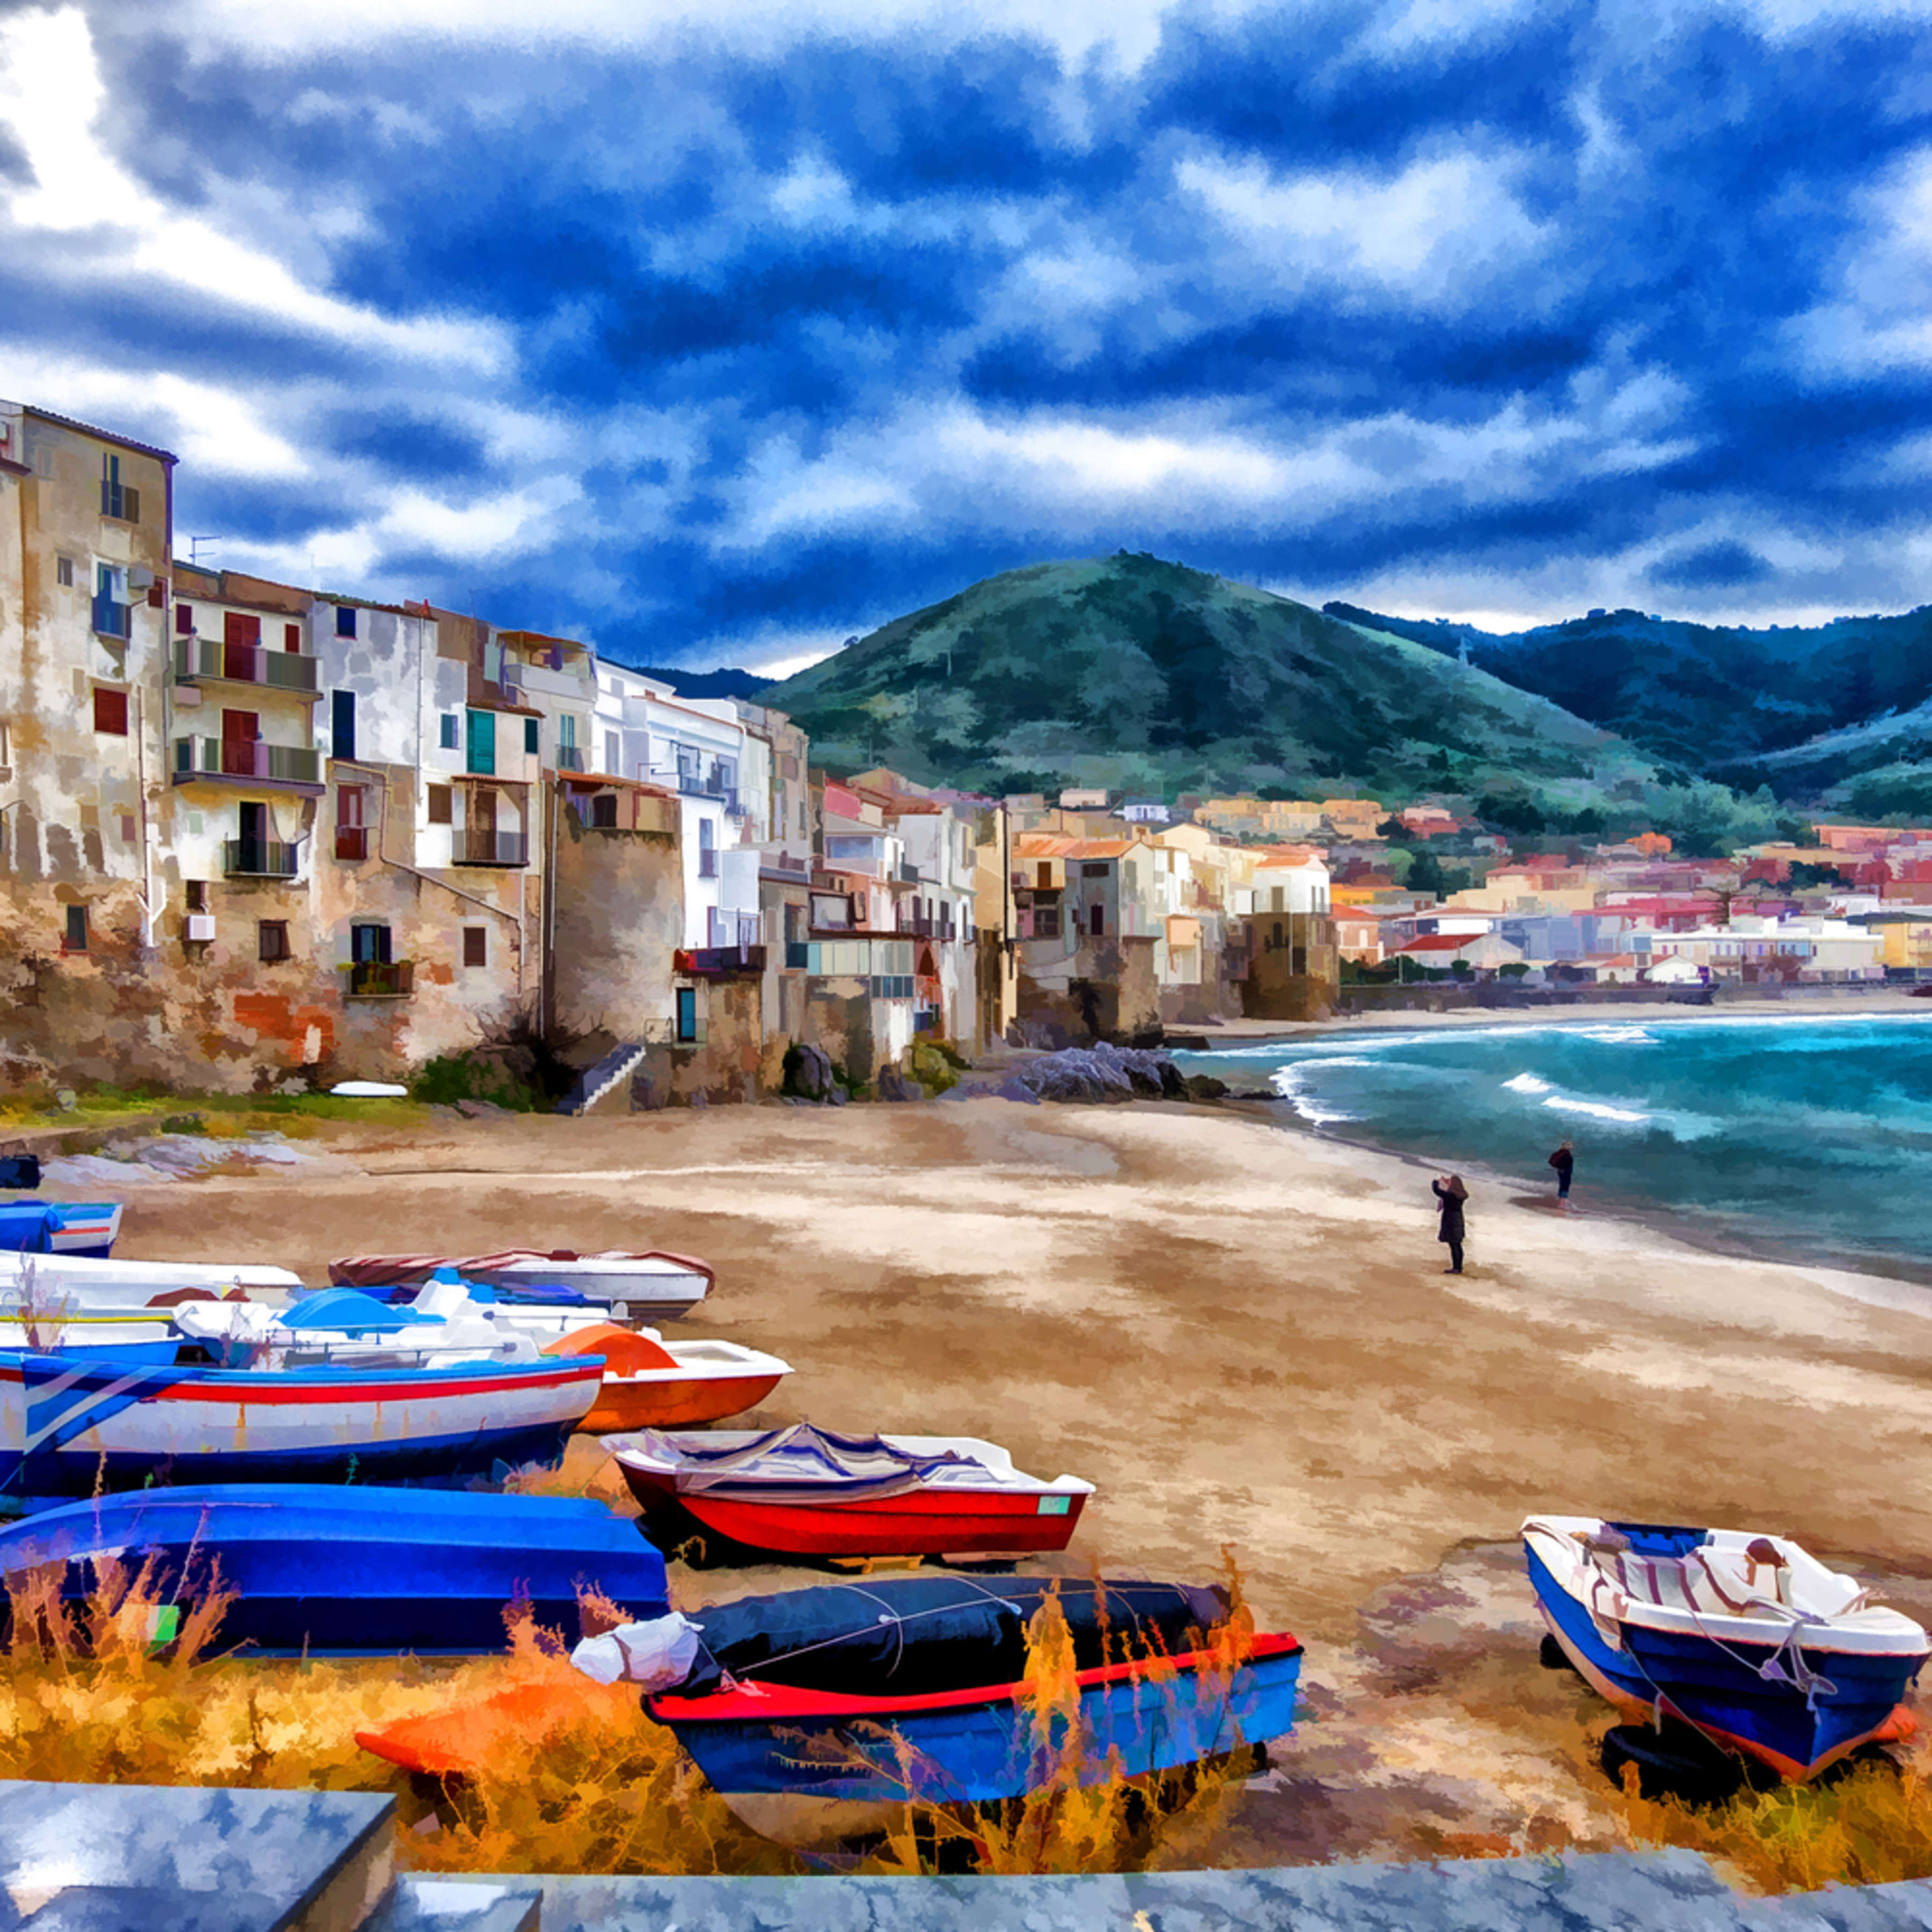 Waterfront at cefalu 12x18 gs9qcy